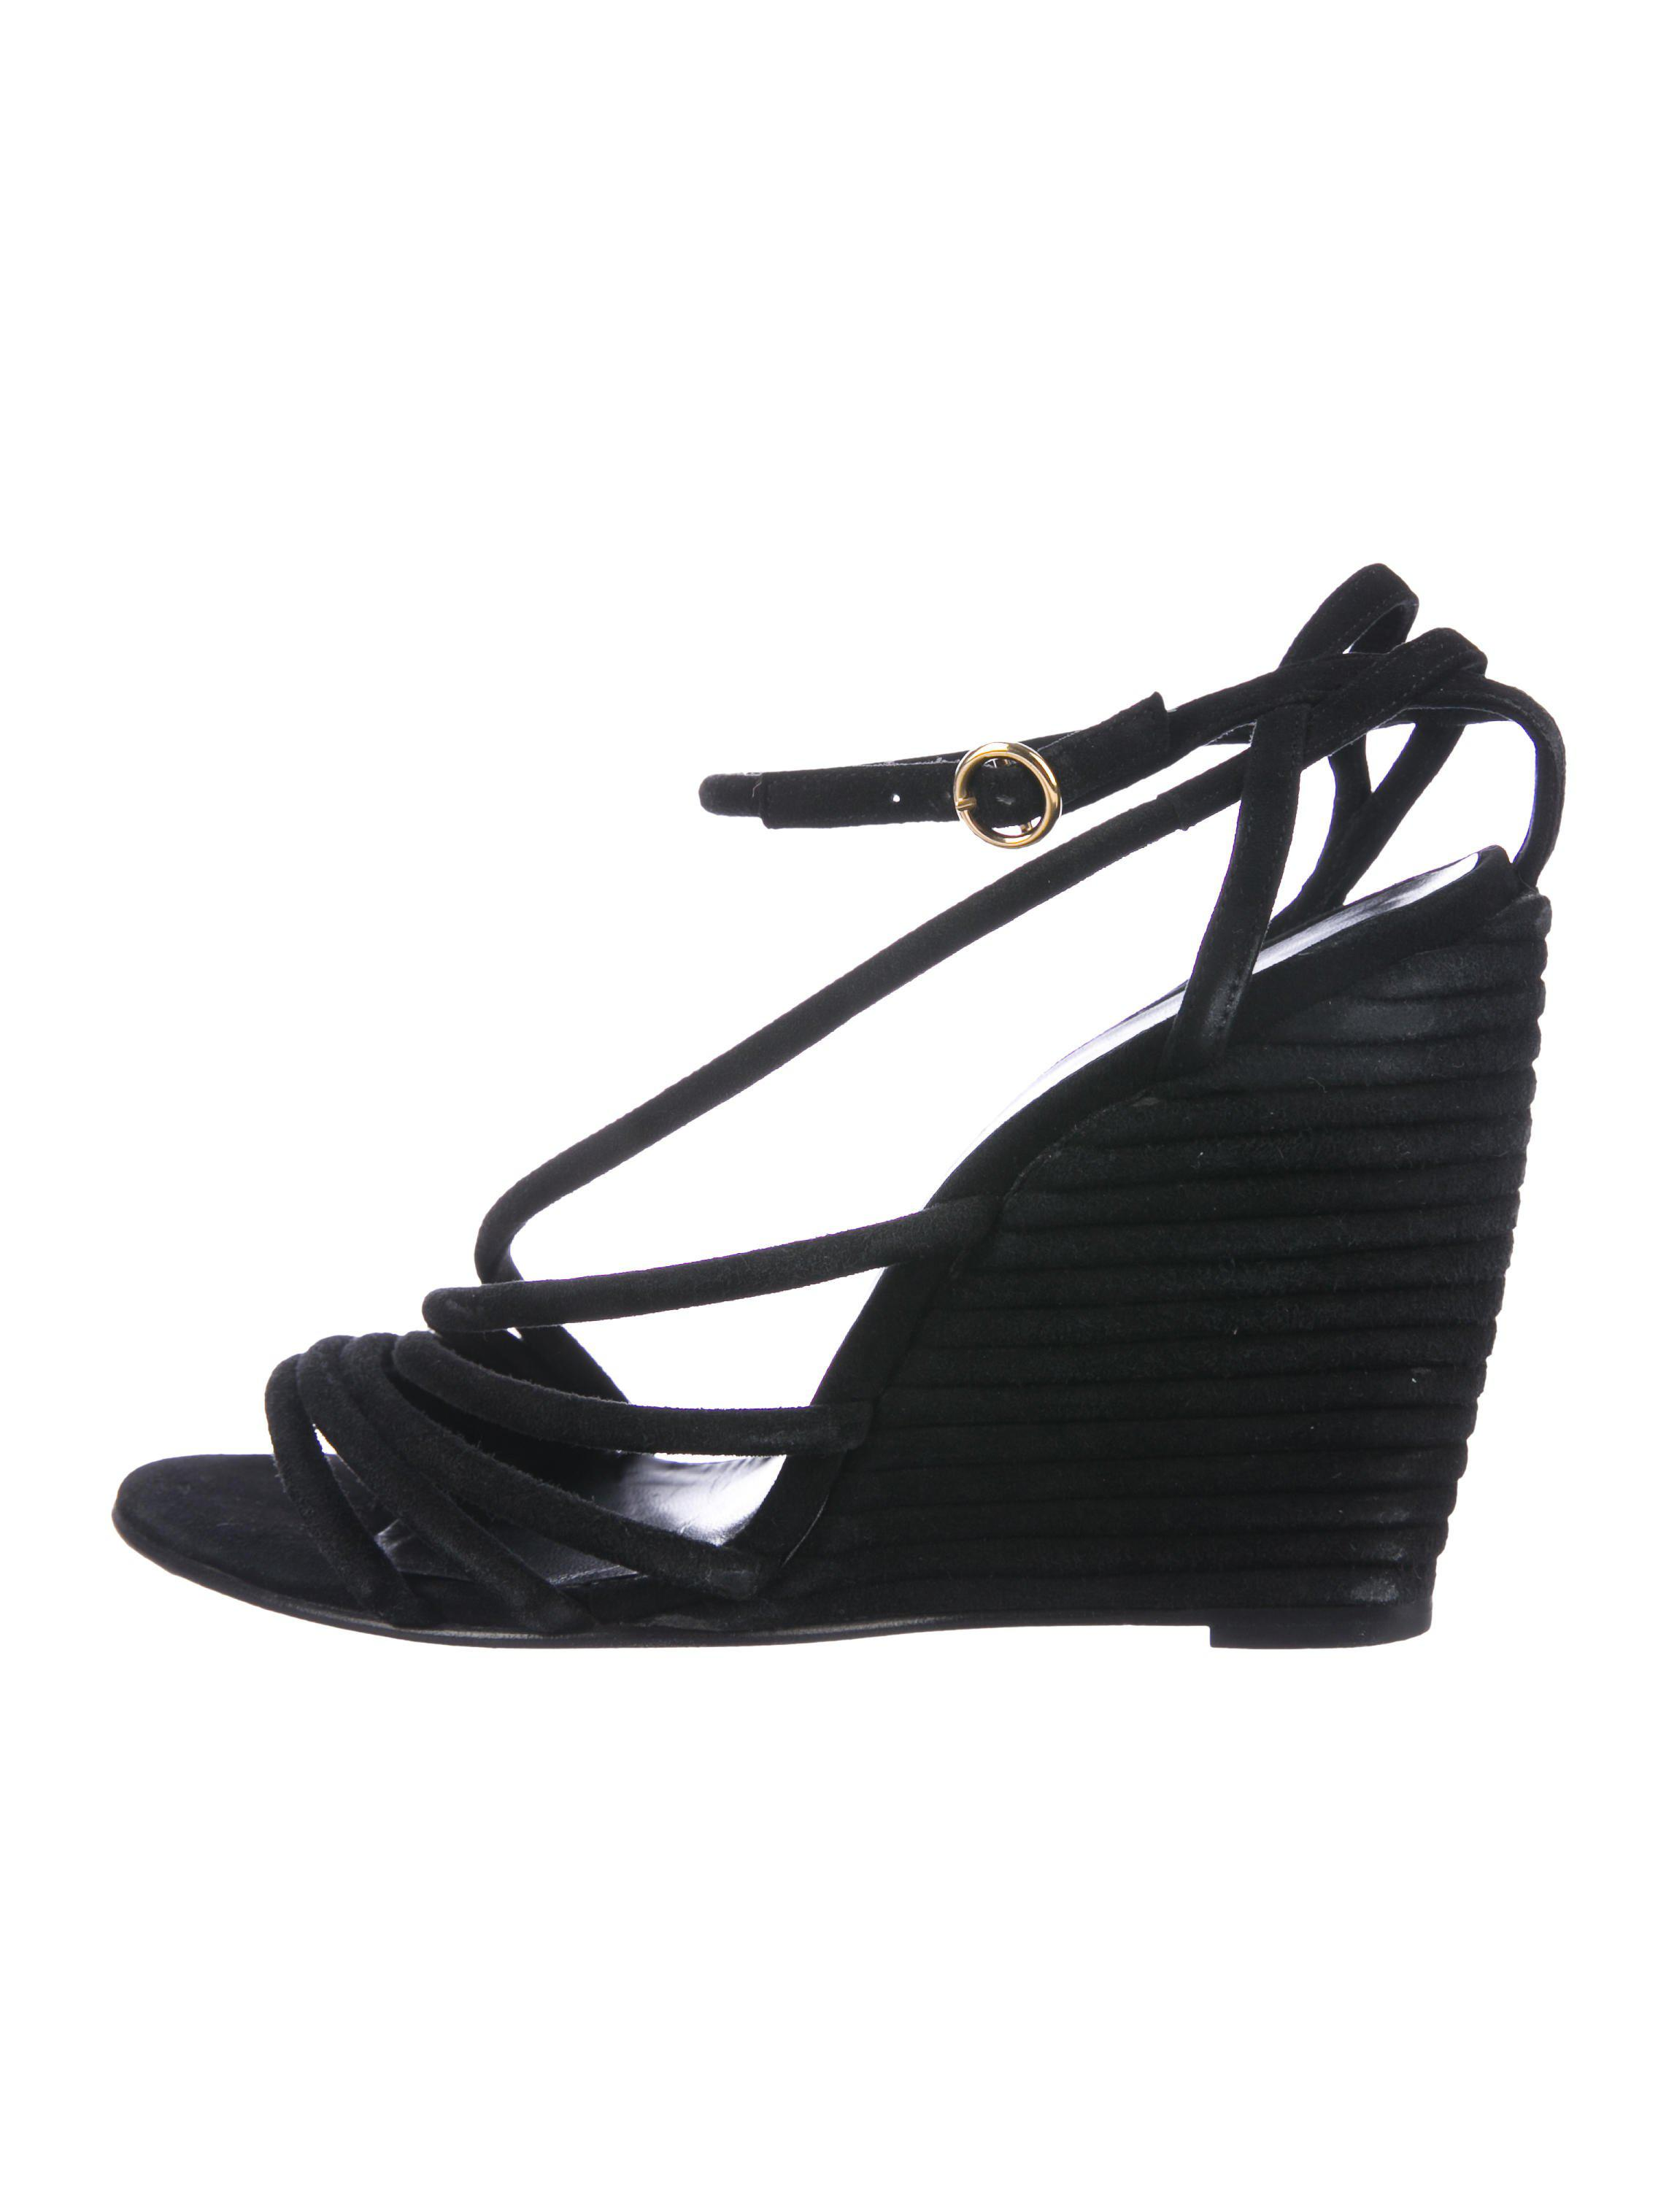 8b21e2d891bed7 Lyst - Pierre Hardy Suede Wedge Sandals in Black